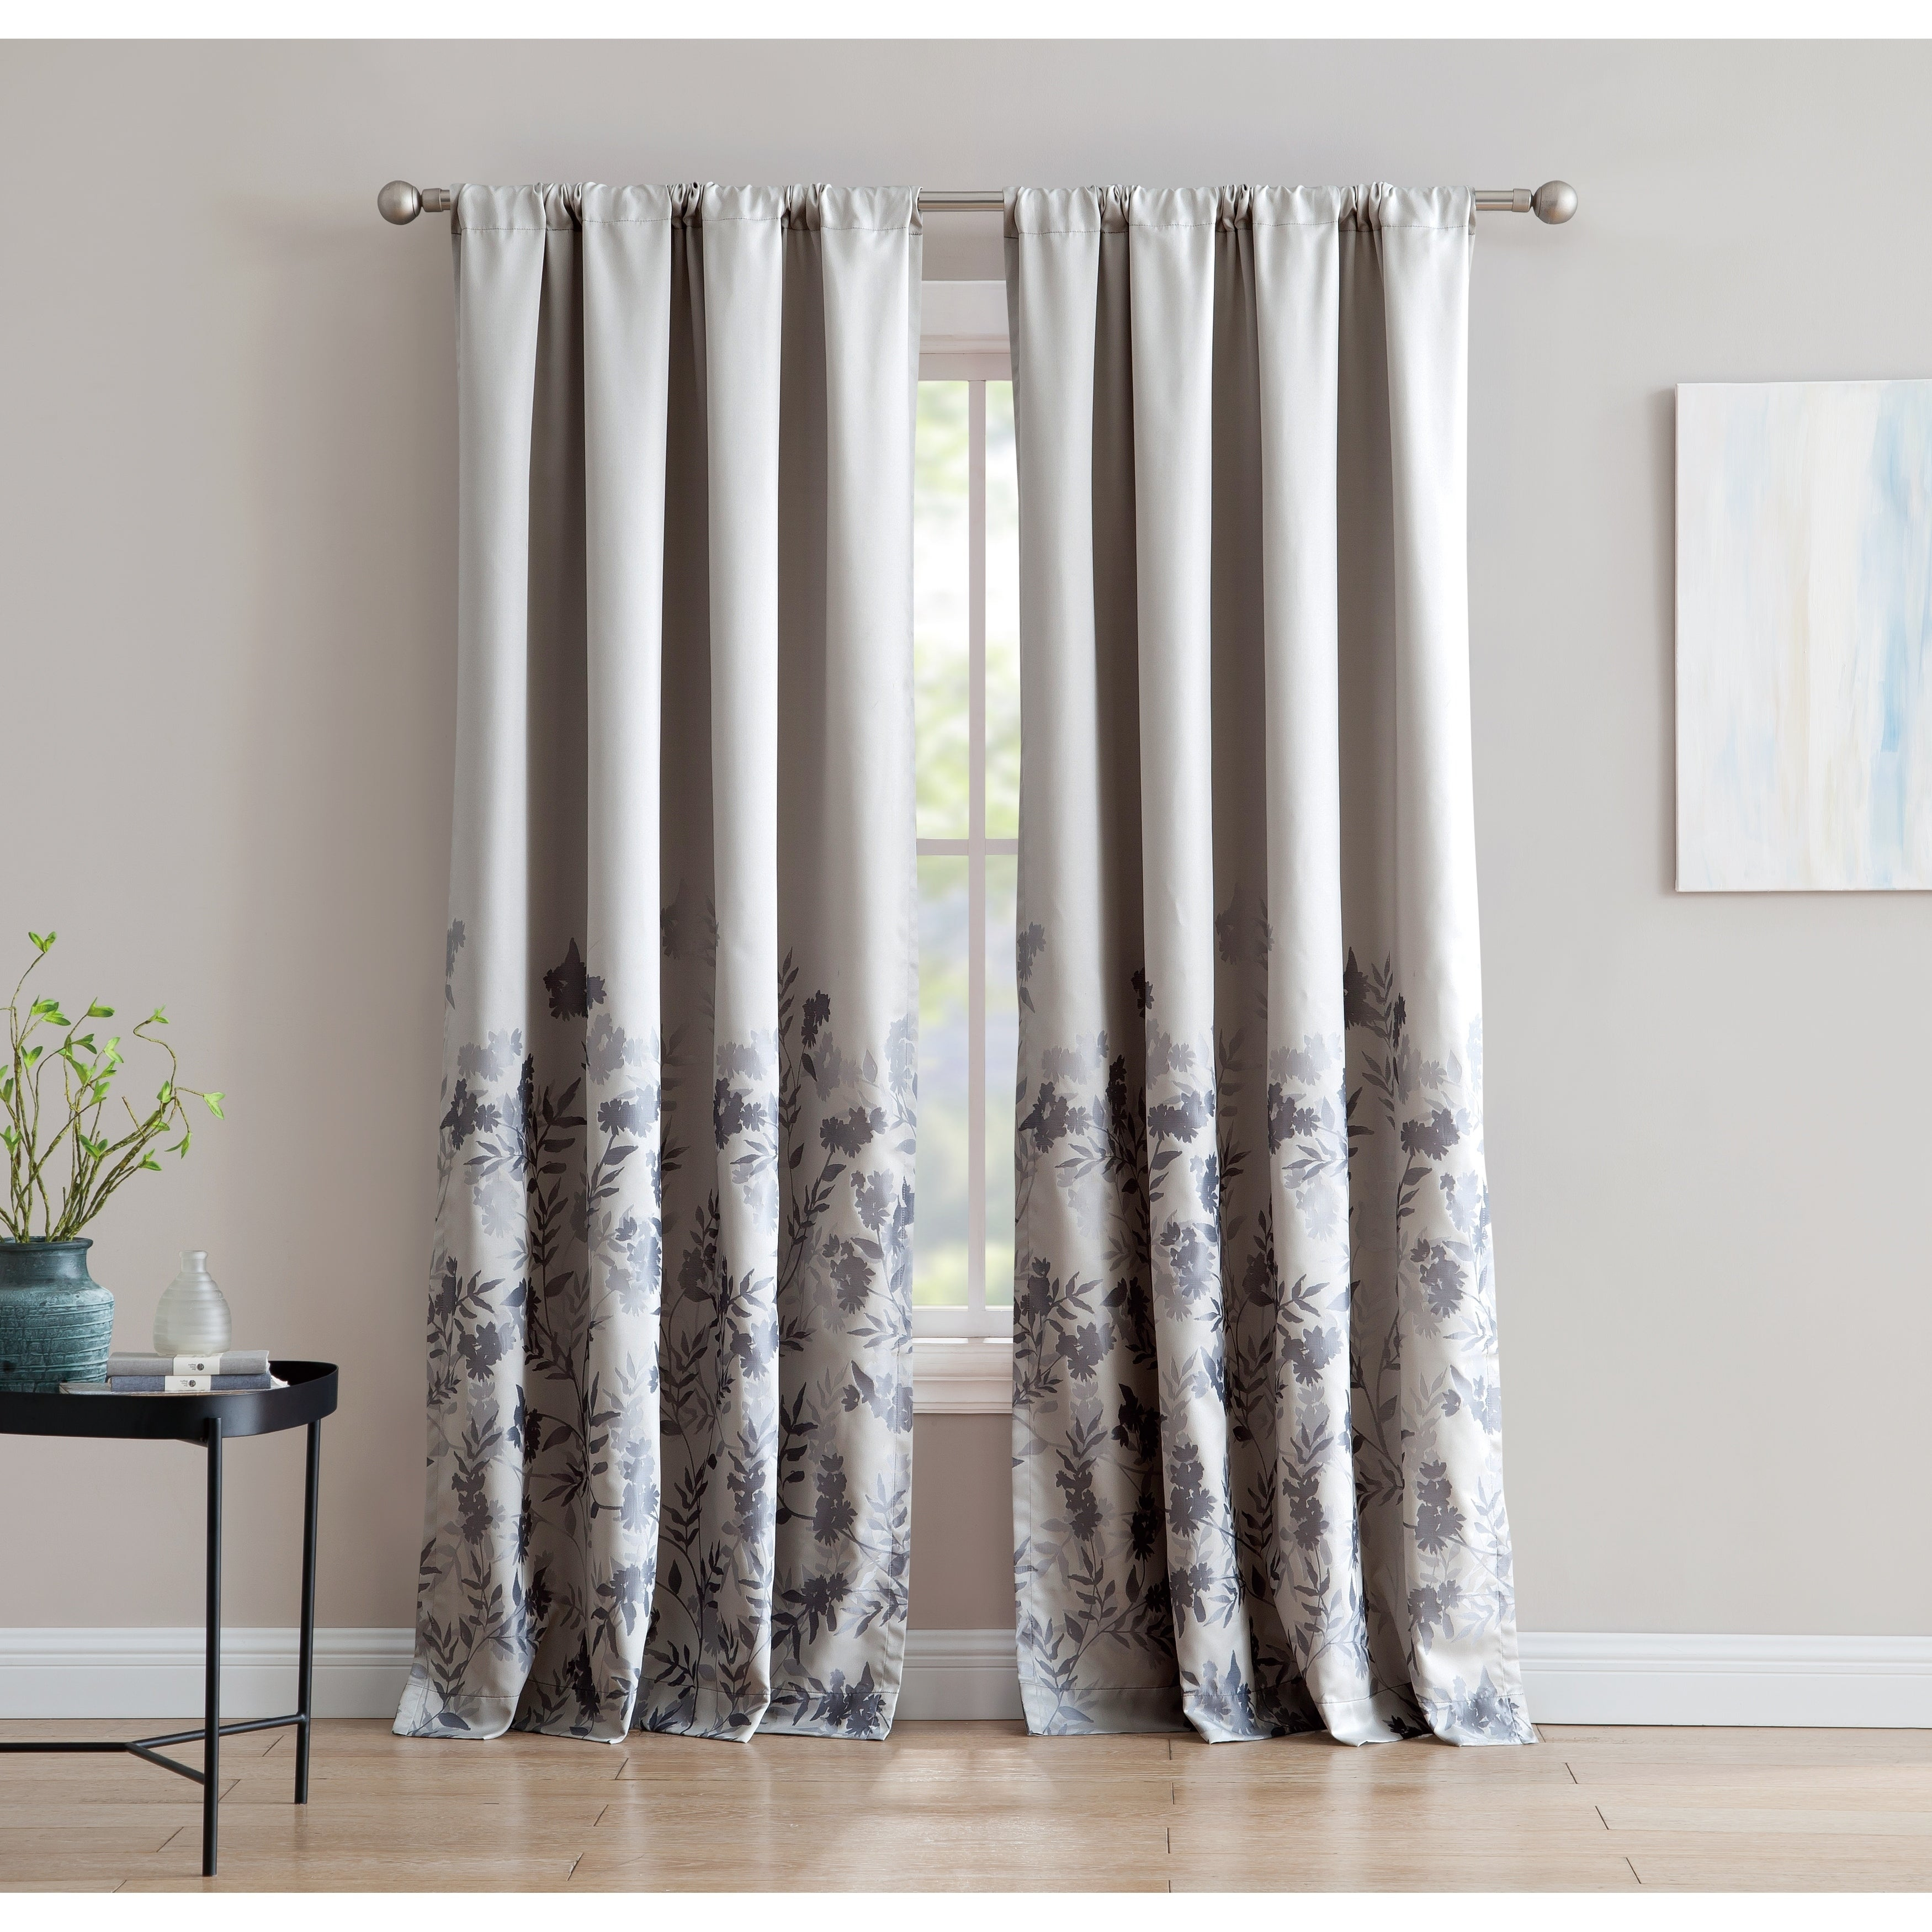 Isabelle Jacquard 84 Inch Window Curtain With Rod Pocket Single Panel, Inspired Surroundings1888 Mills Regarding Willow Rod Pocket Window Curtain Panels (View 14 of 30)